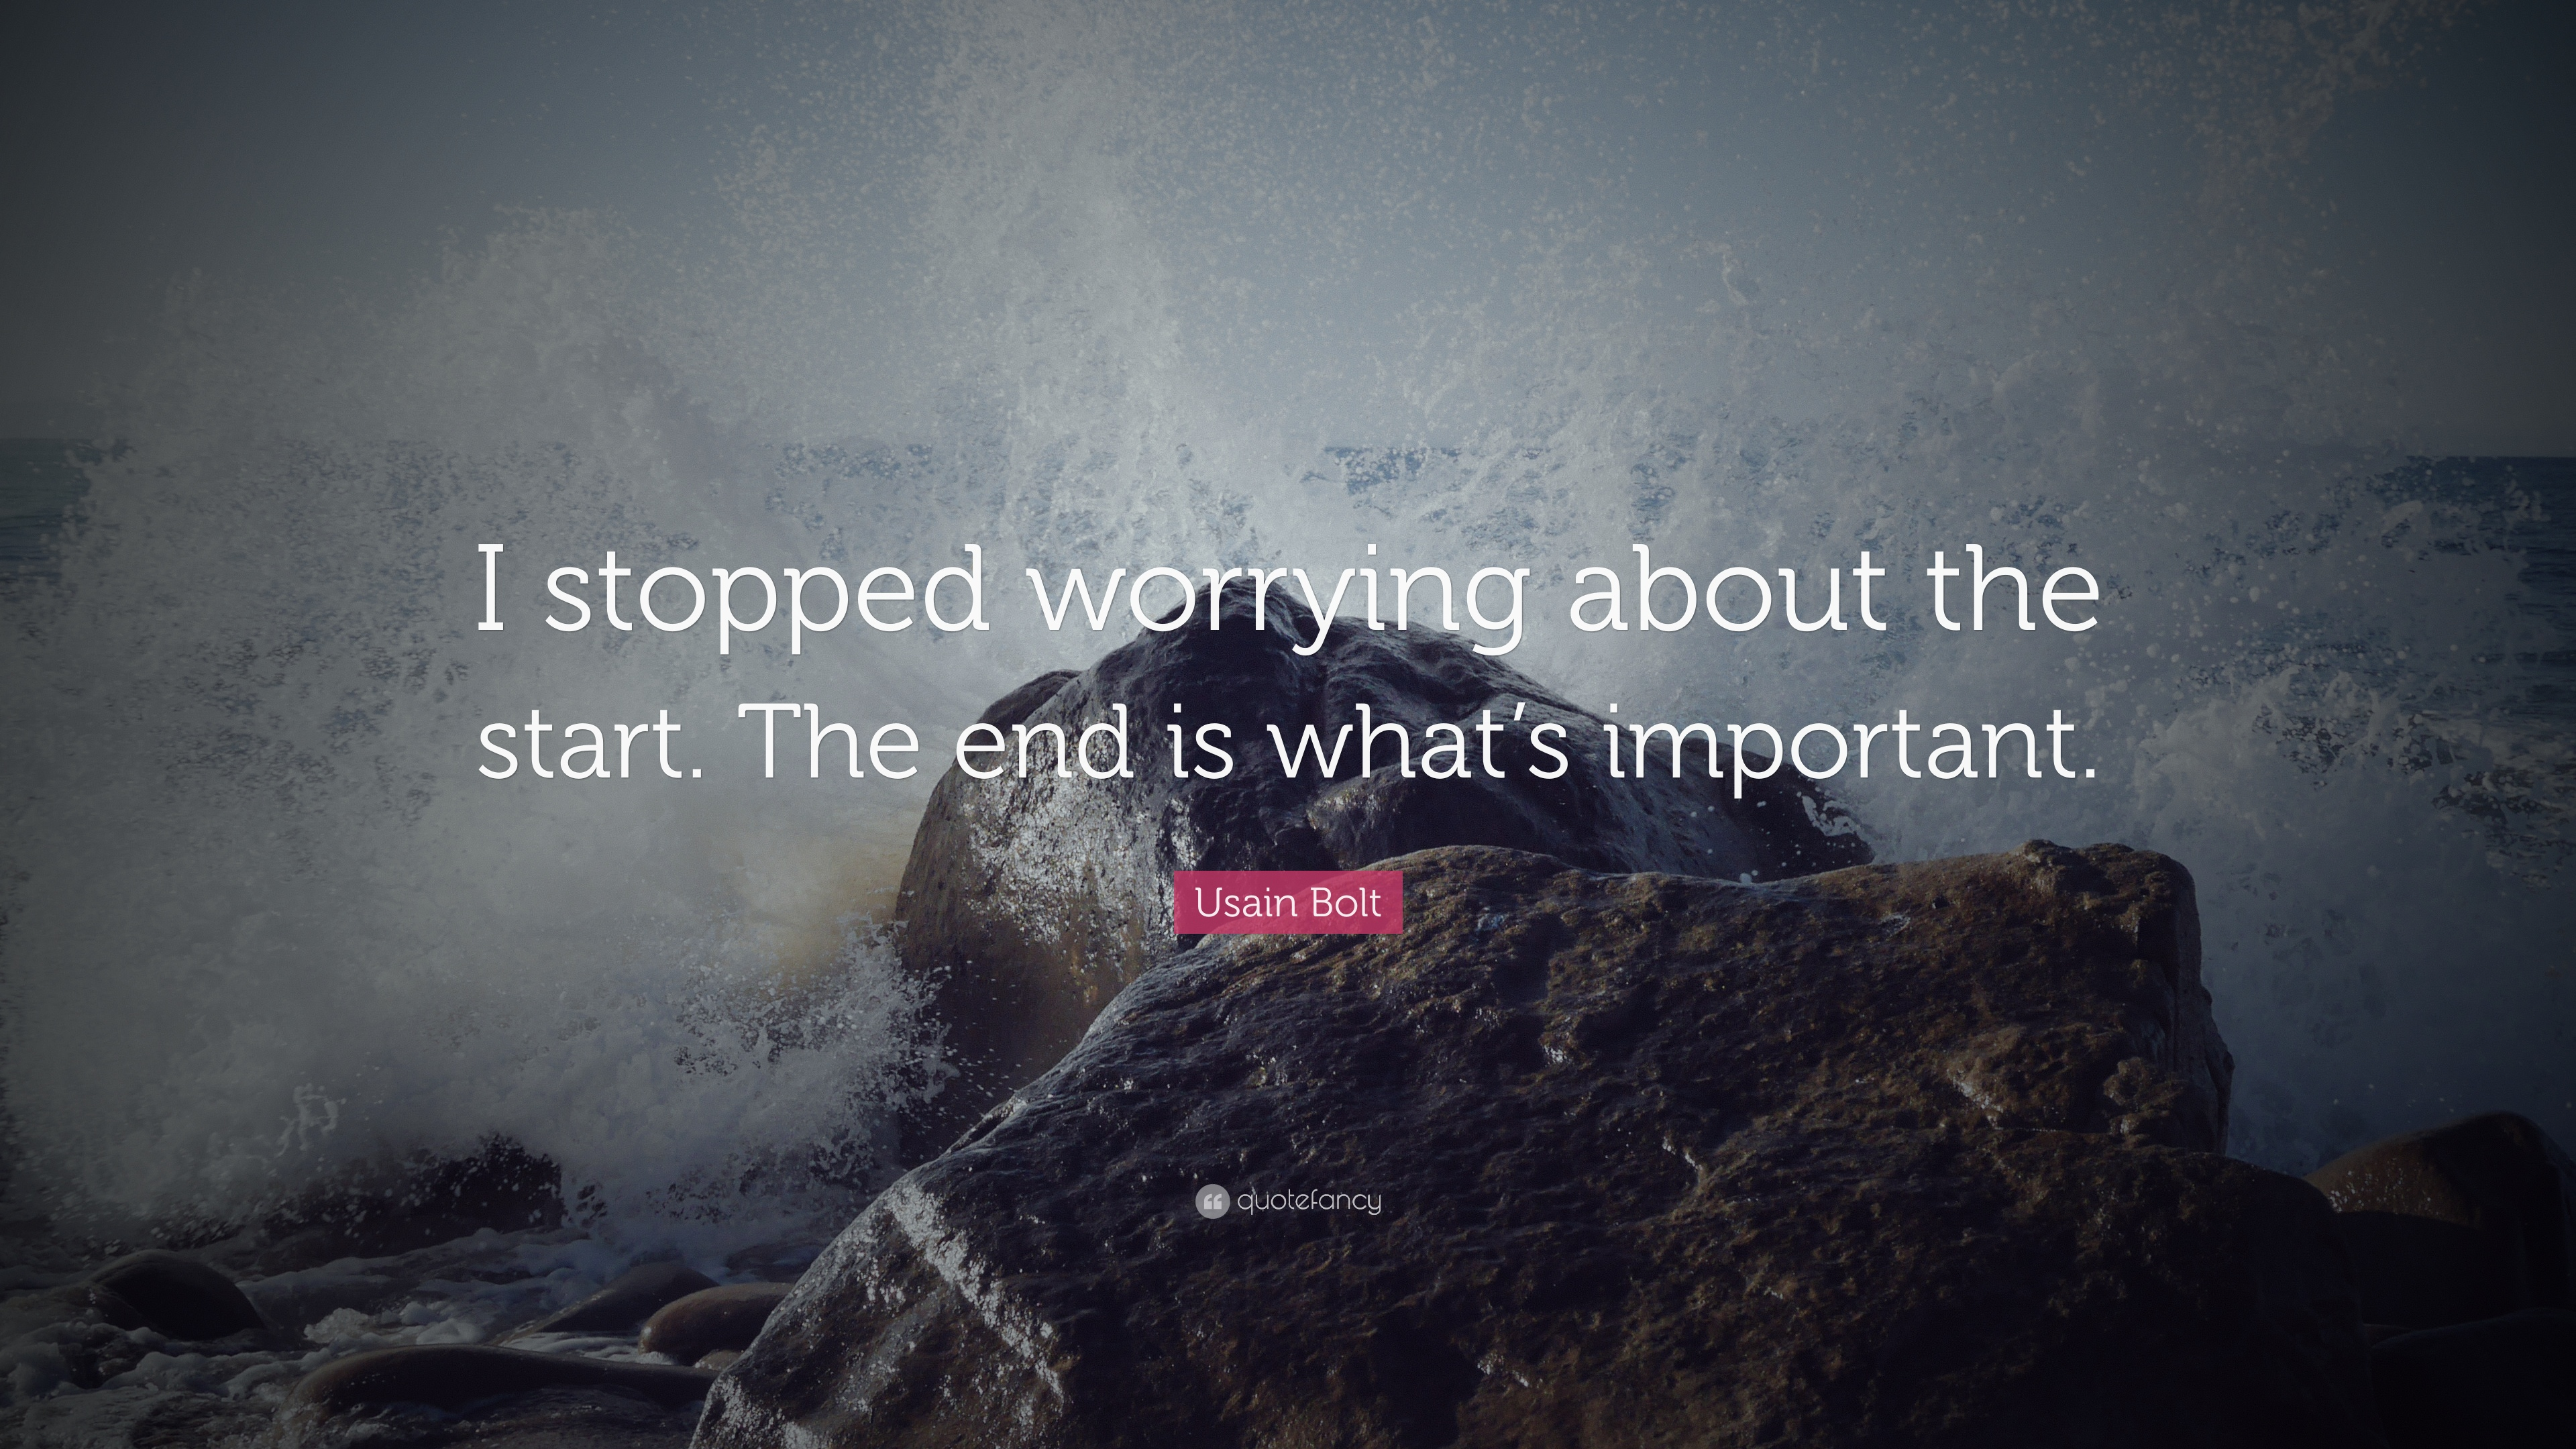 Usain Bolt Quote I Stopped Worrying About The Start The End Is What S Important 12 Wallpapers Quotefancy